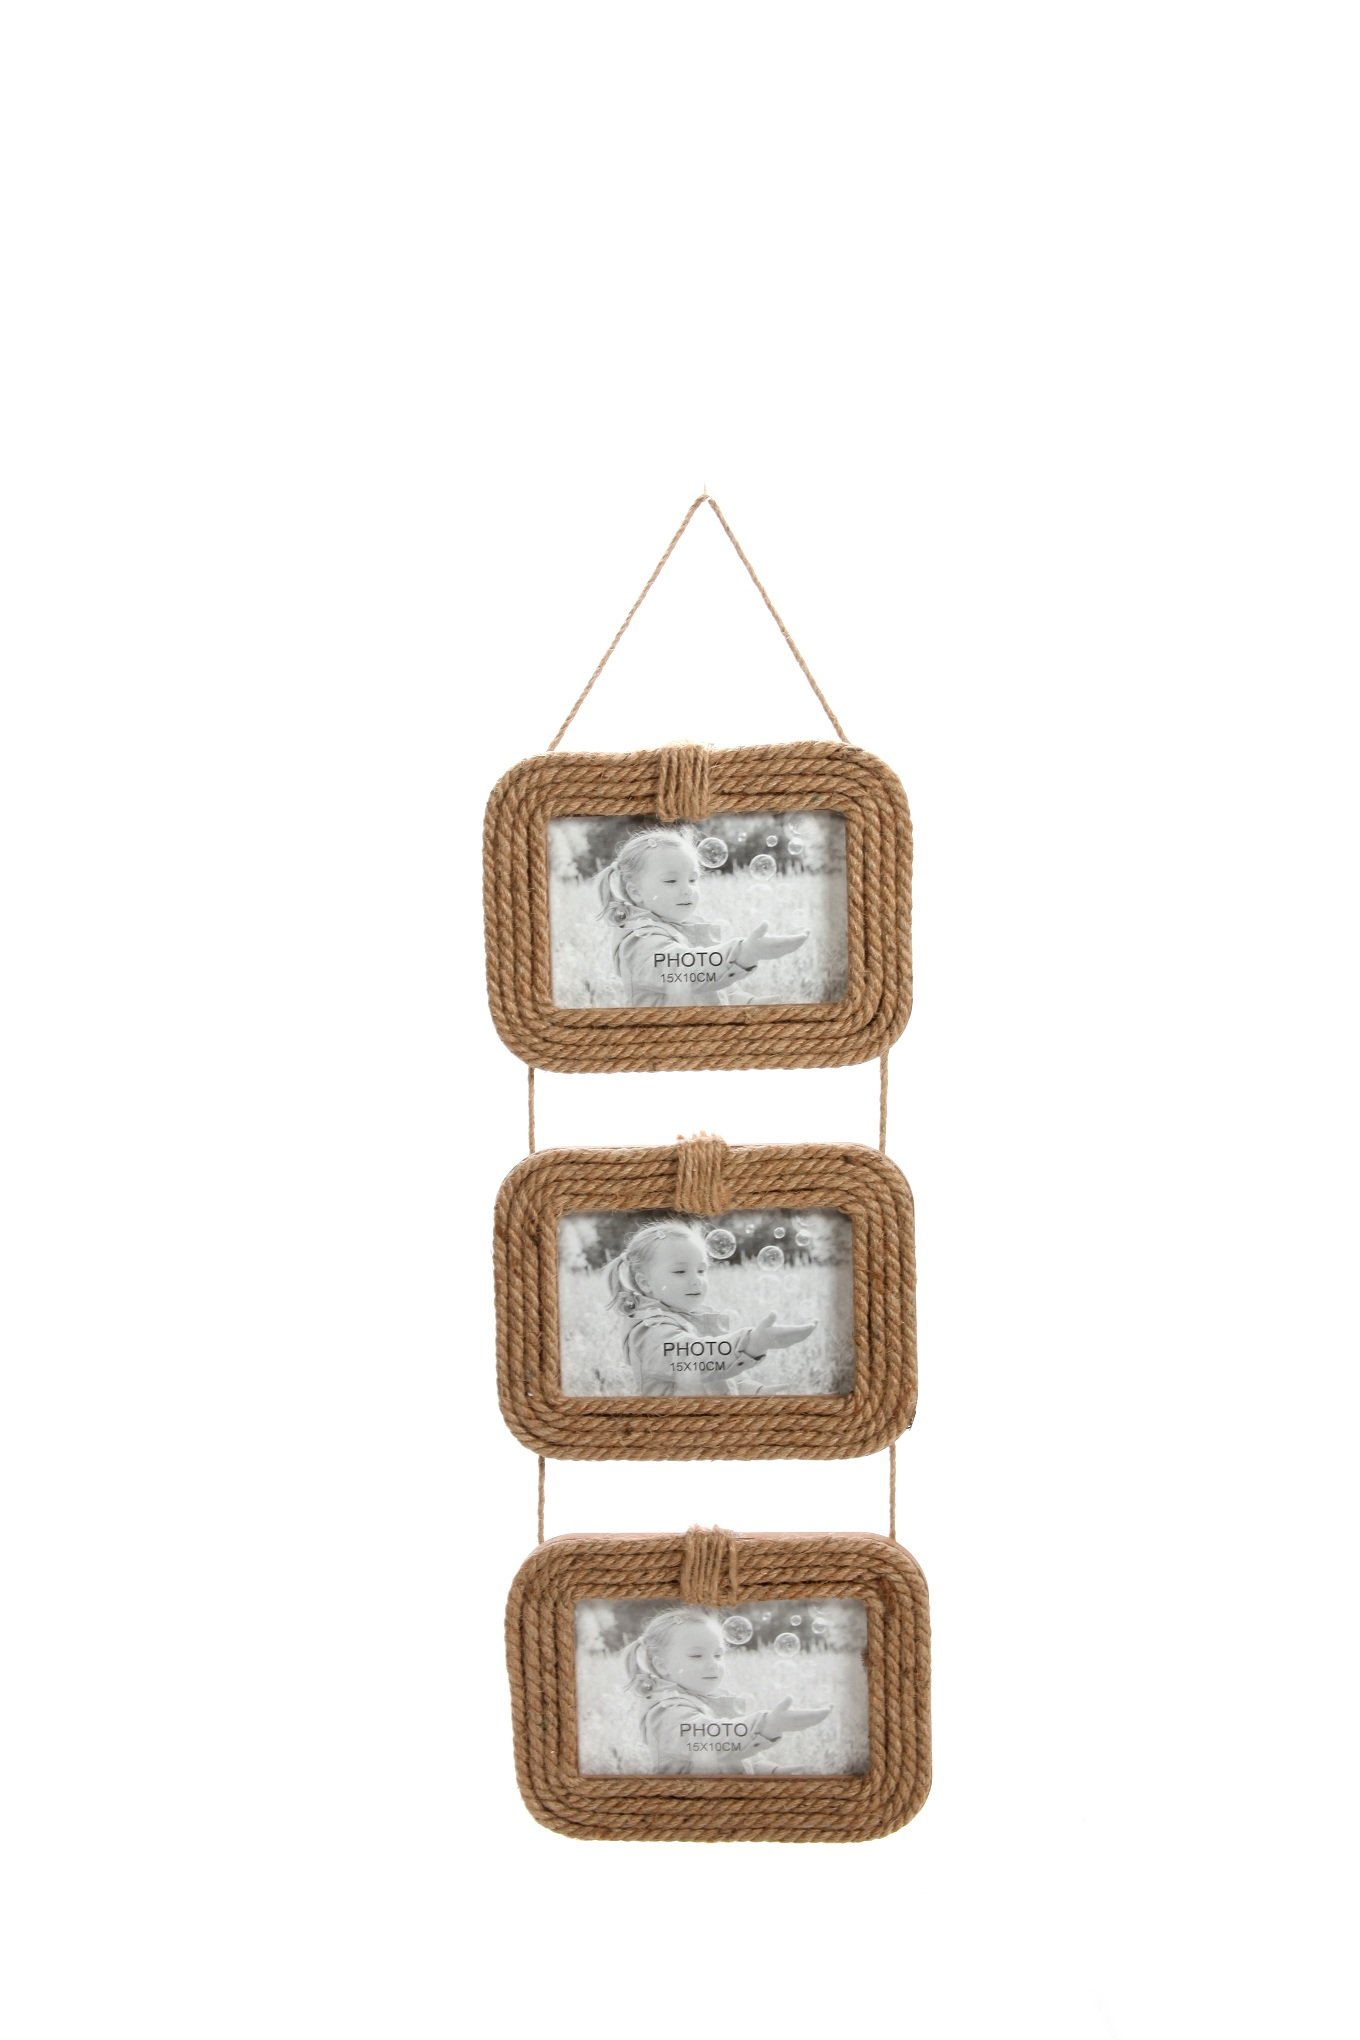 Hosley Jute Rope Three 4'' x 6'' Photo Frames - 20'' High. Ideal Gift for Wedding or Special Occasion and use for Party, Home/Office, Spa, Bathroom Setting. P2 by Hosley (Image #1)